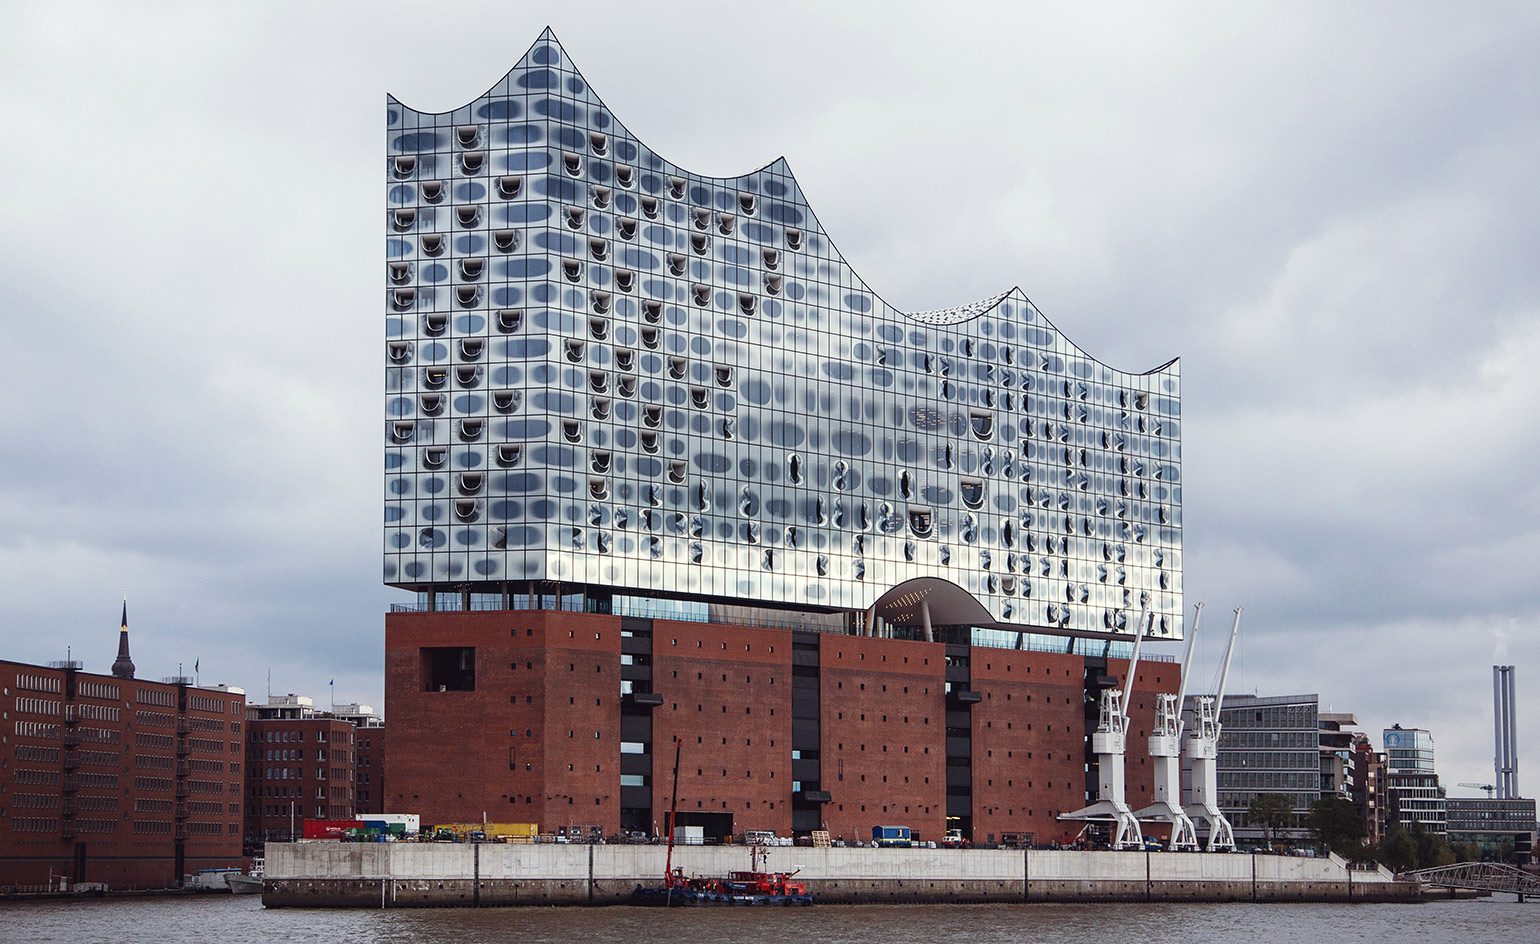 herzog de meuron 39 s elbphilharmonie opens in hamburg wallpaper. Black Bedroom Furniture Sets. Home Design Ideas